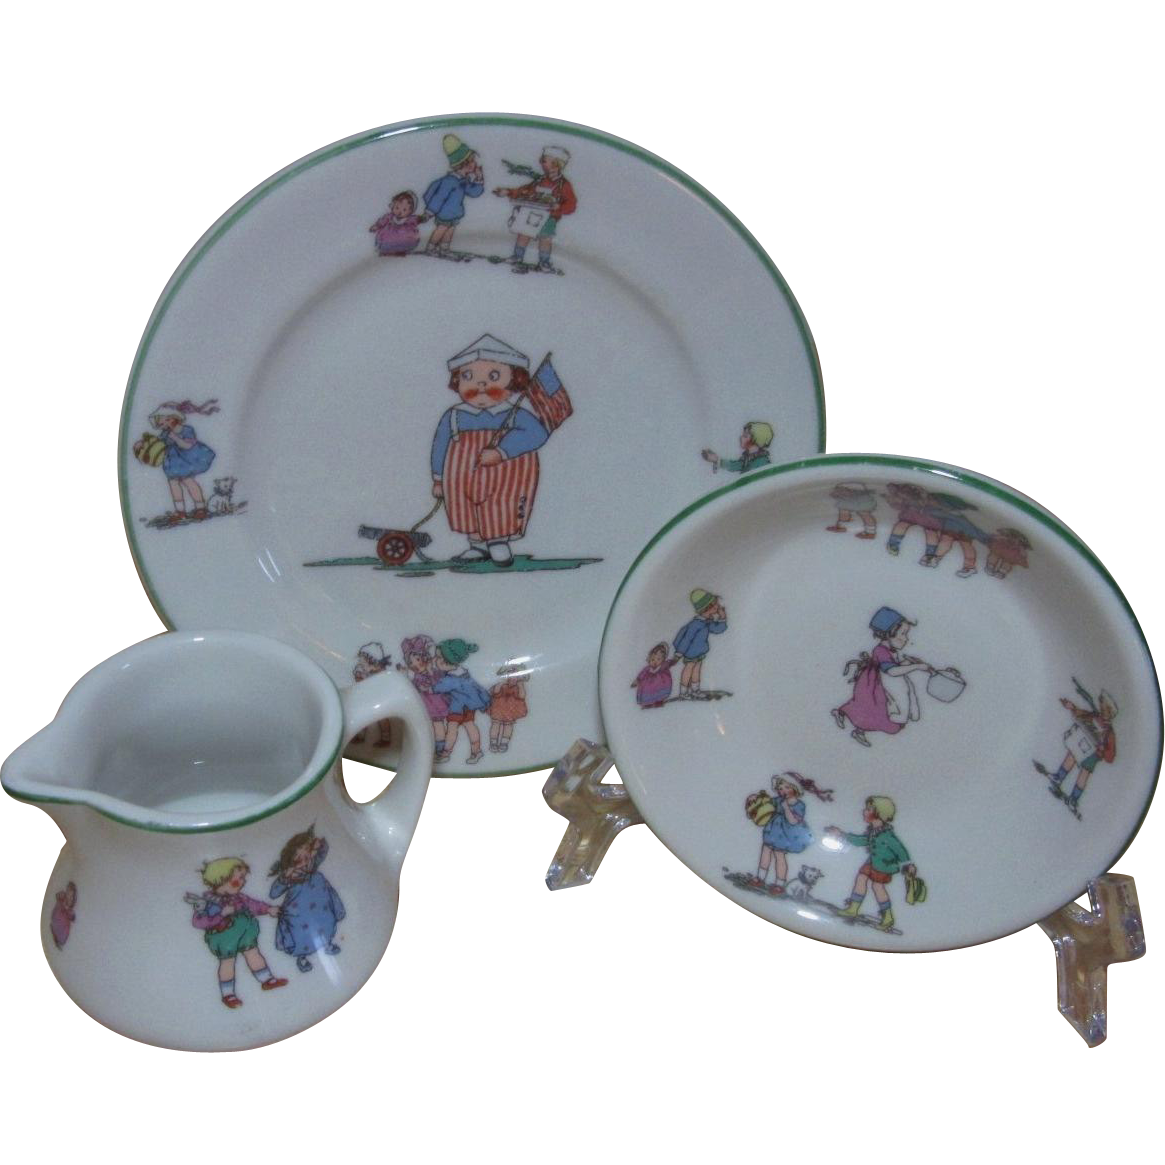 Shenango Children's Restaurant Ware Bread Plate, Small Bowl, and Cream Pitcher